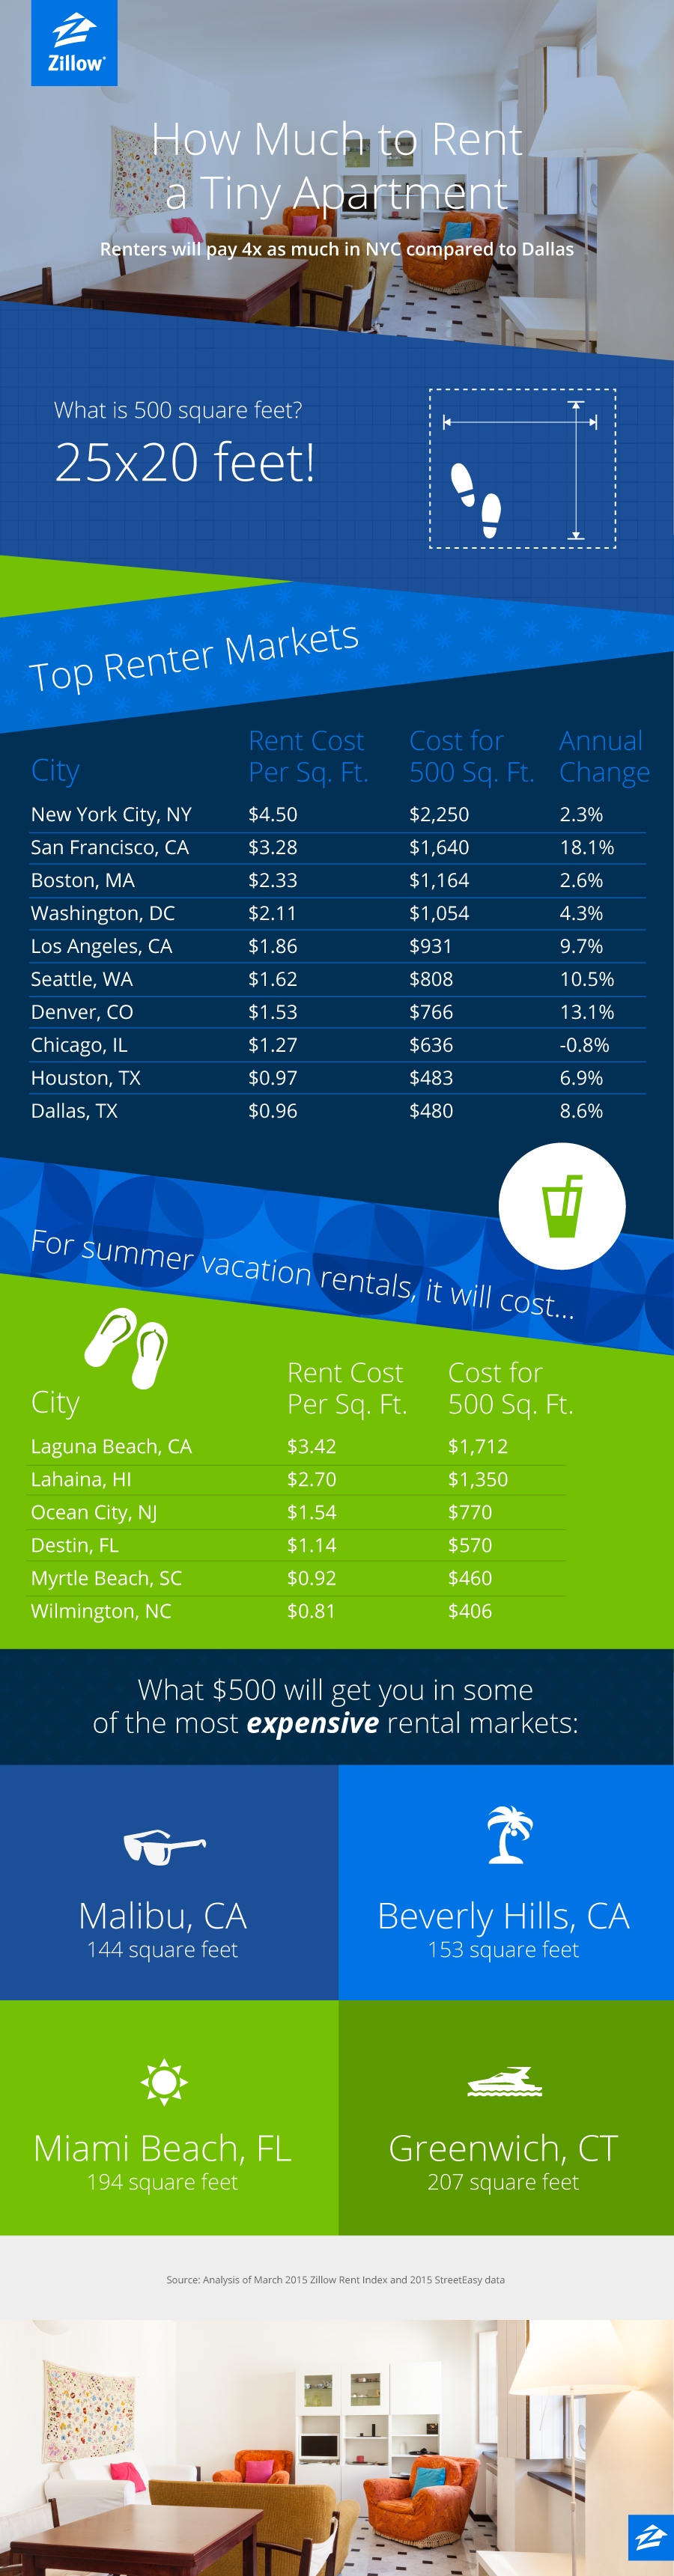 how much to rent a tiny apartment